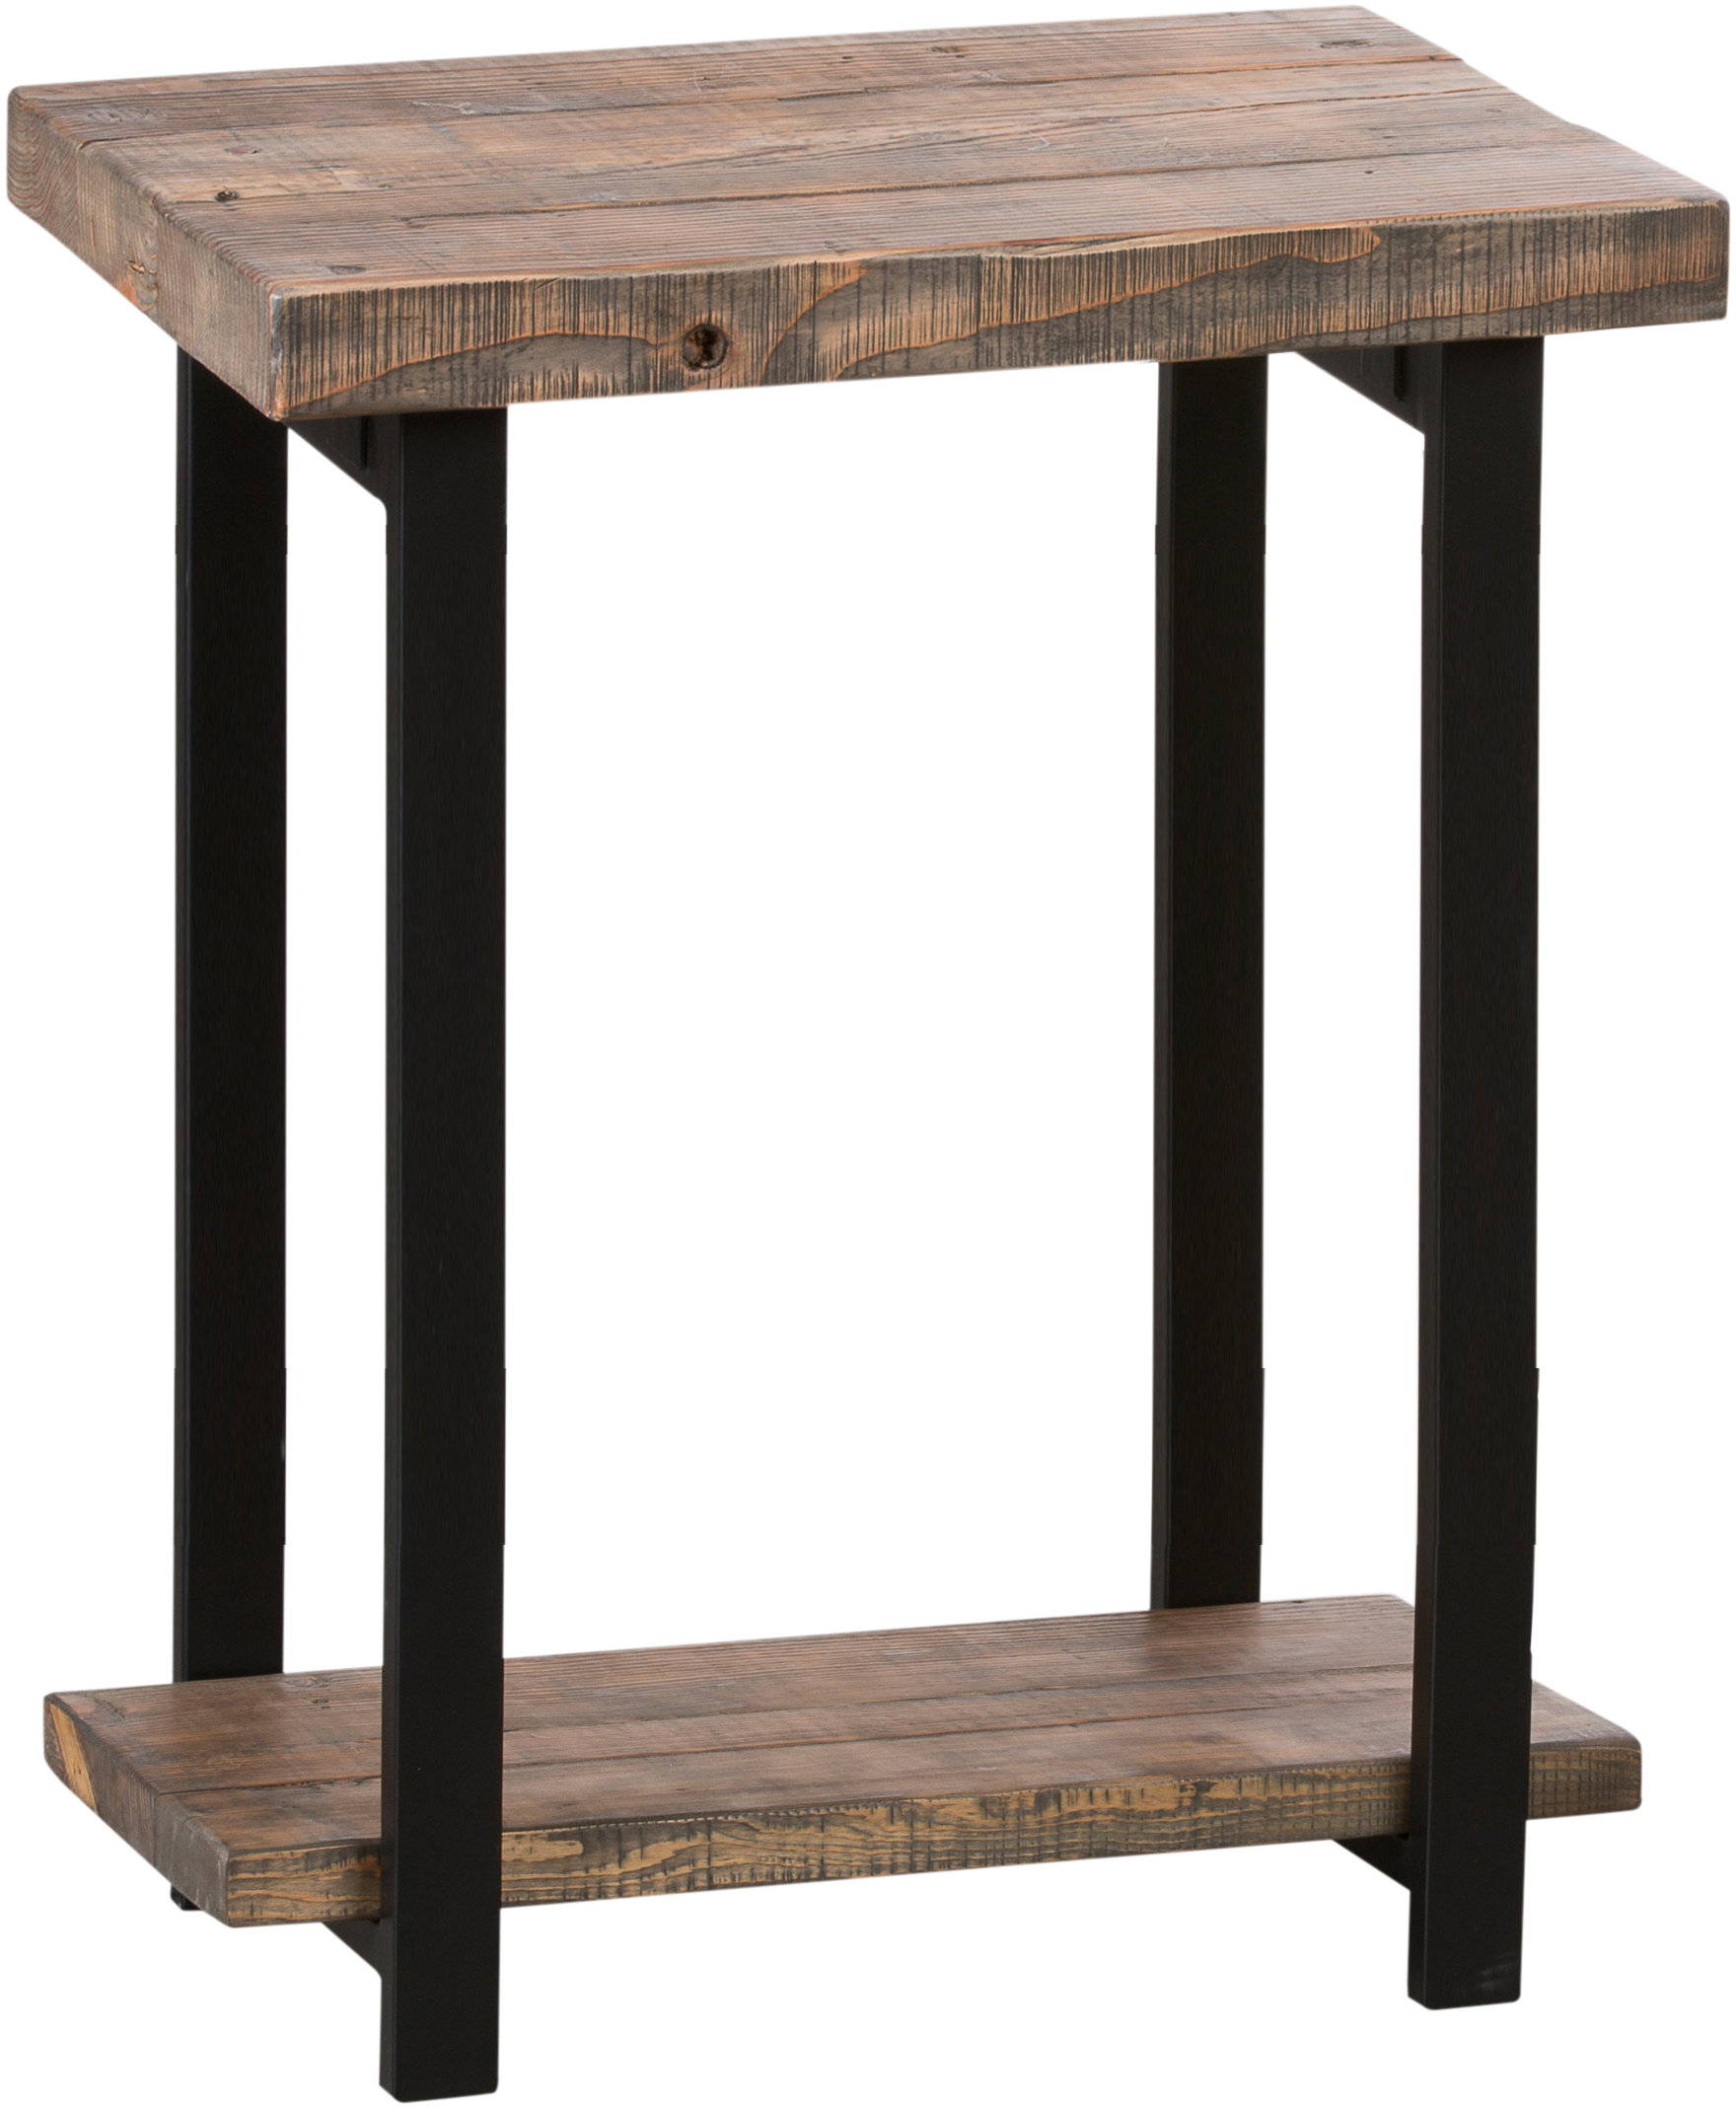 charlton home crosskennan end table with storage birch lane veropeso twisted mango wood accent large grey clock outdoor bar cover swivel chairs for living room tables from target